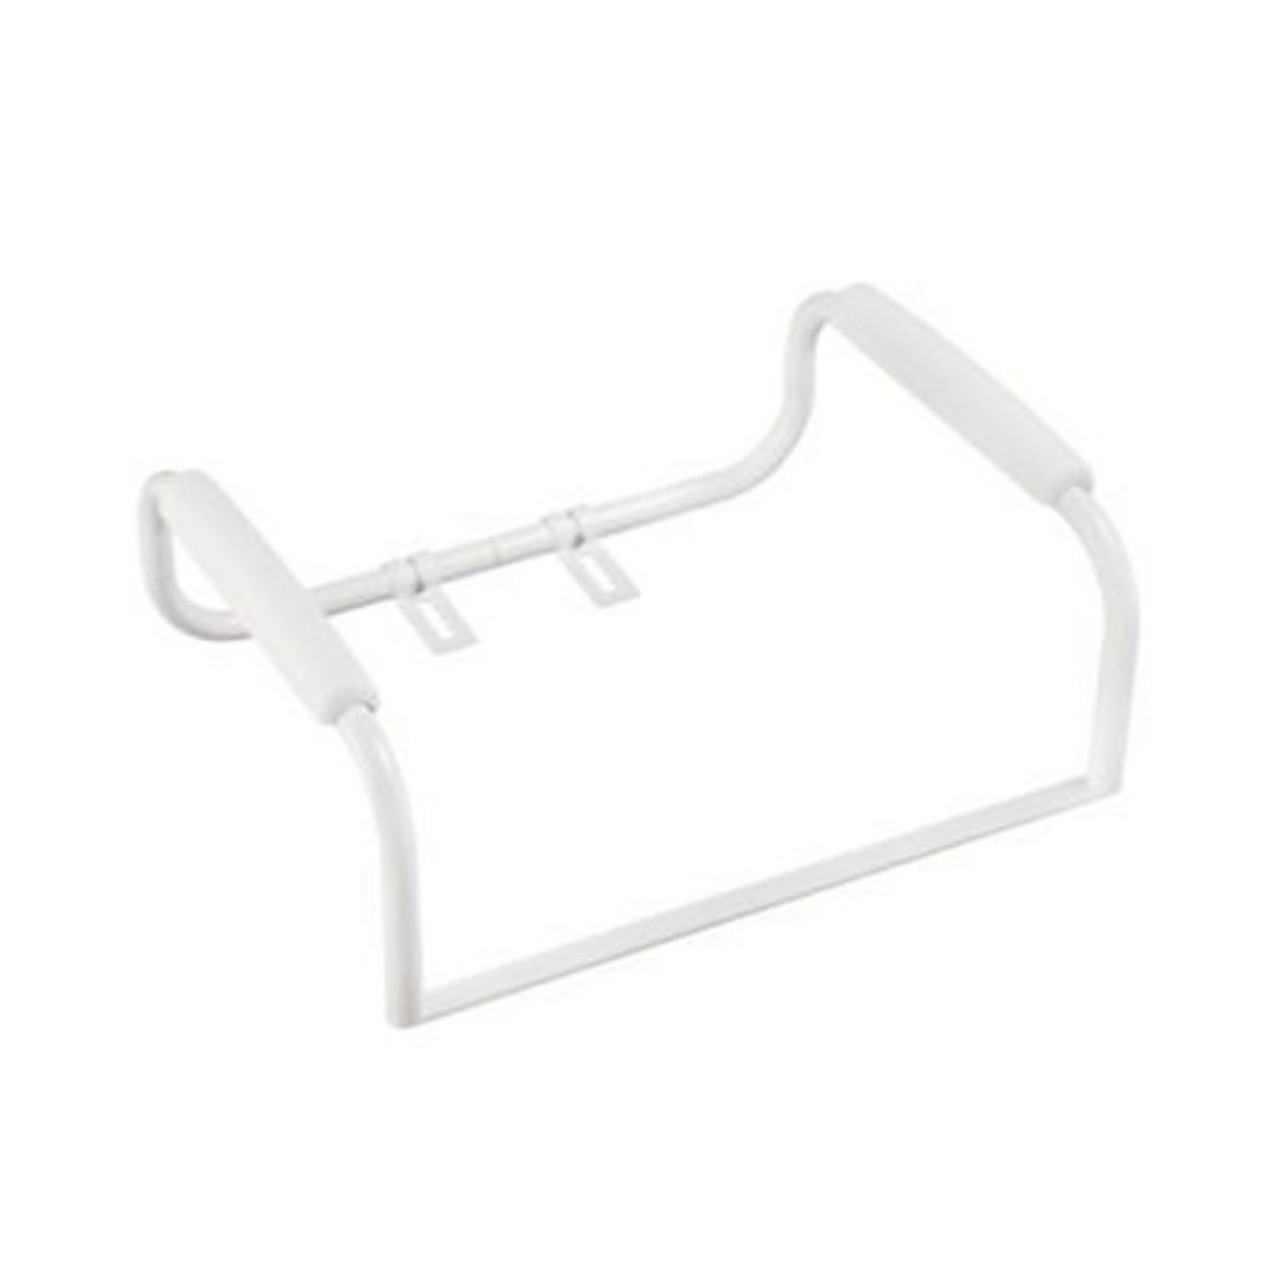 S1F575 Safety First Toilet Safety Bar White